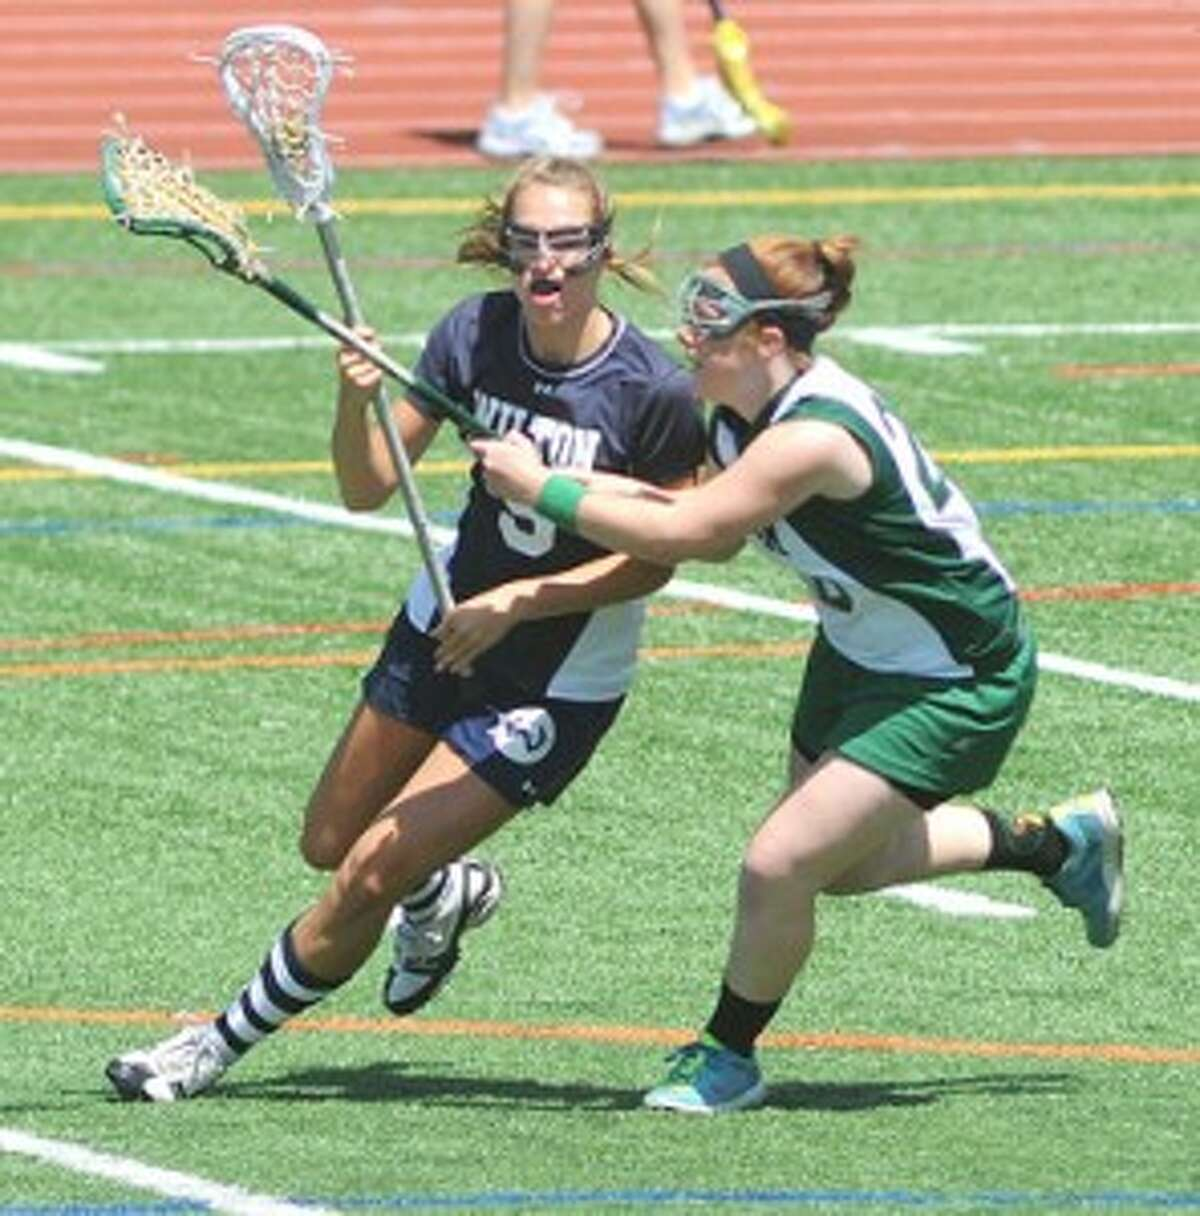 It's time to sing the praises of one of Wilton's unsung lacrosse heroines